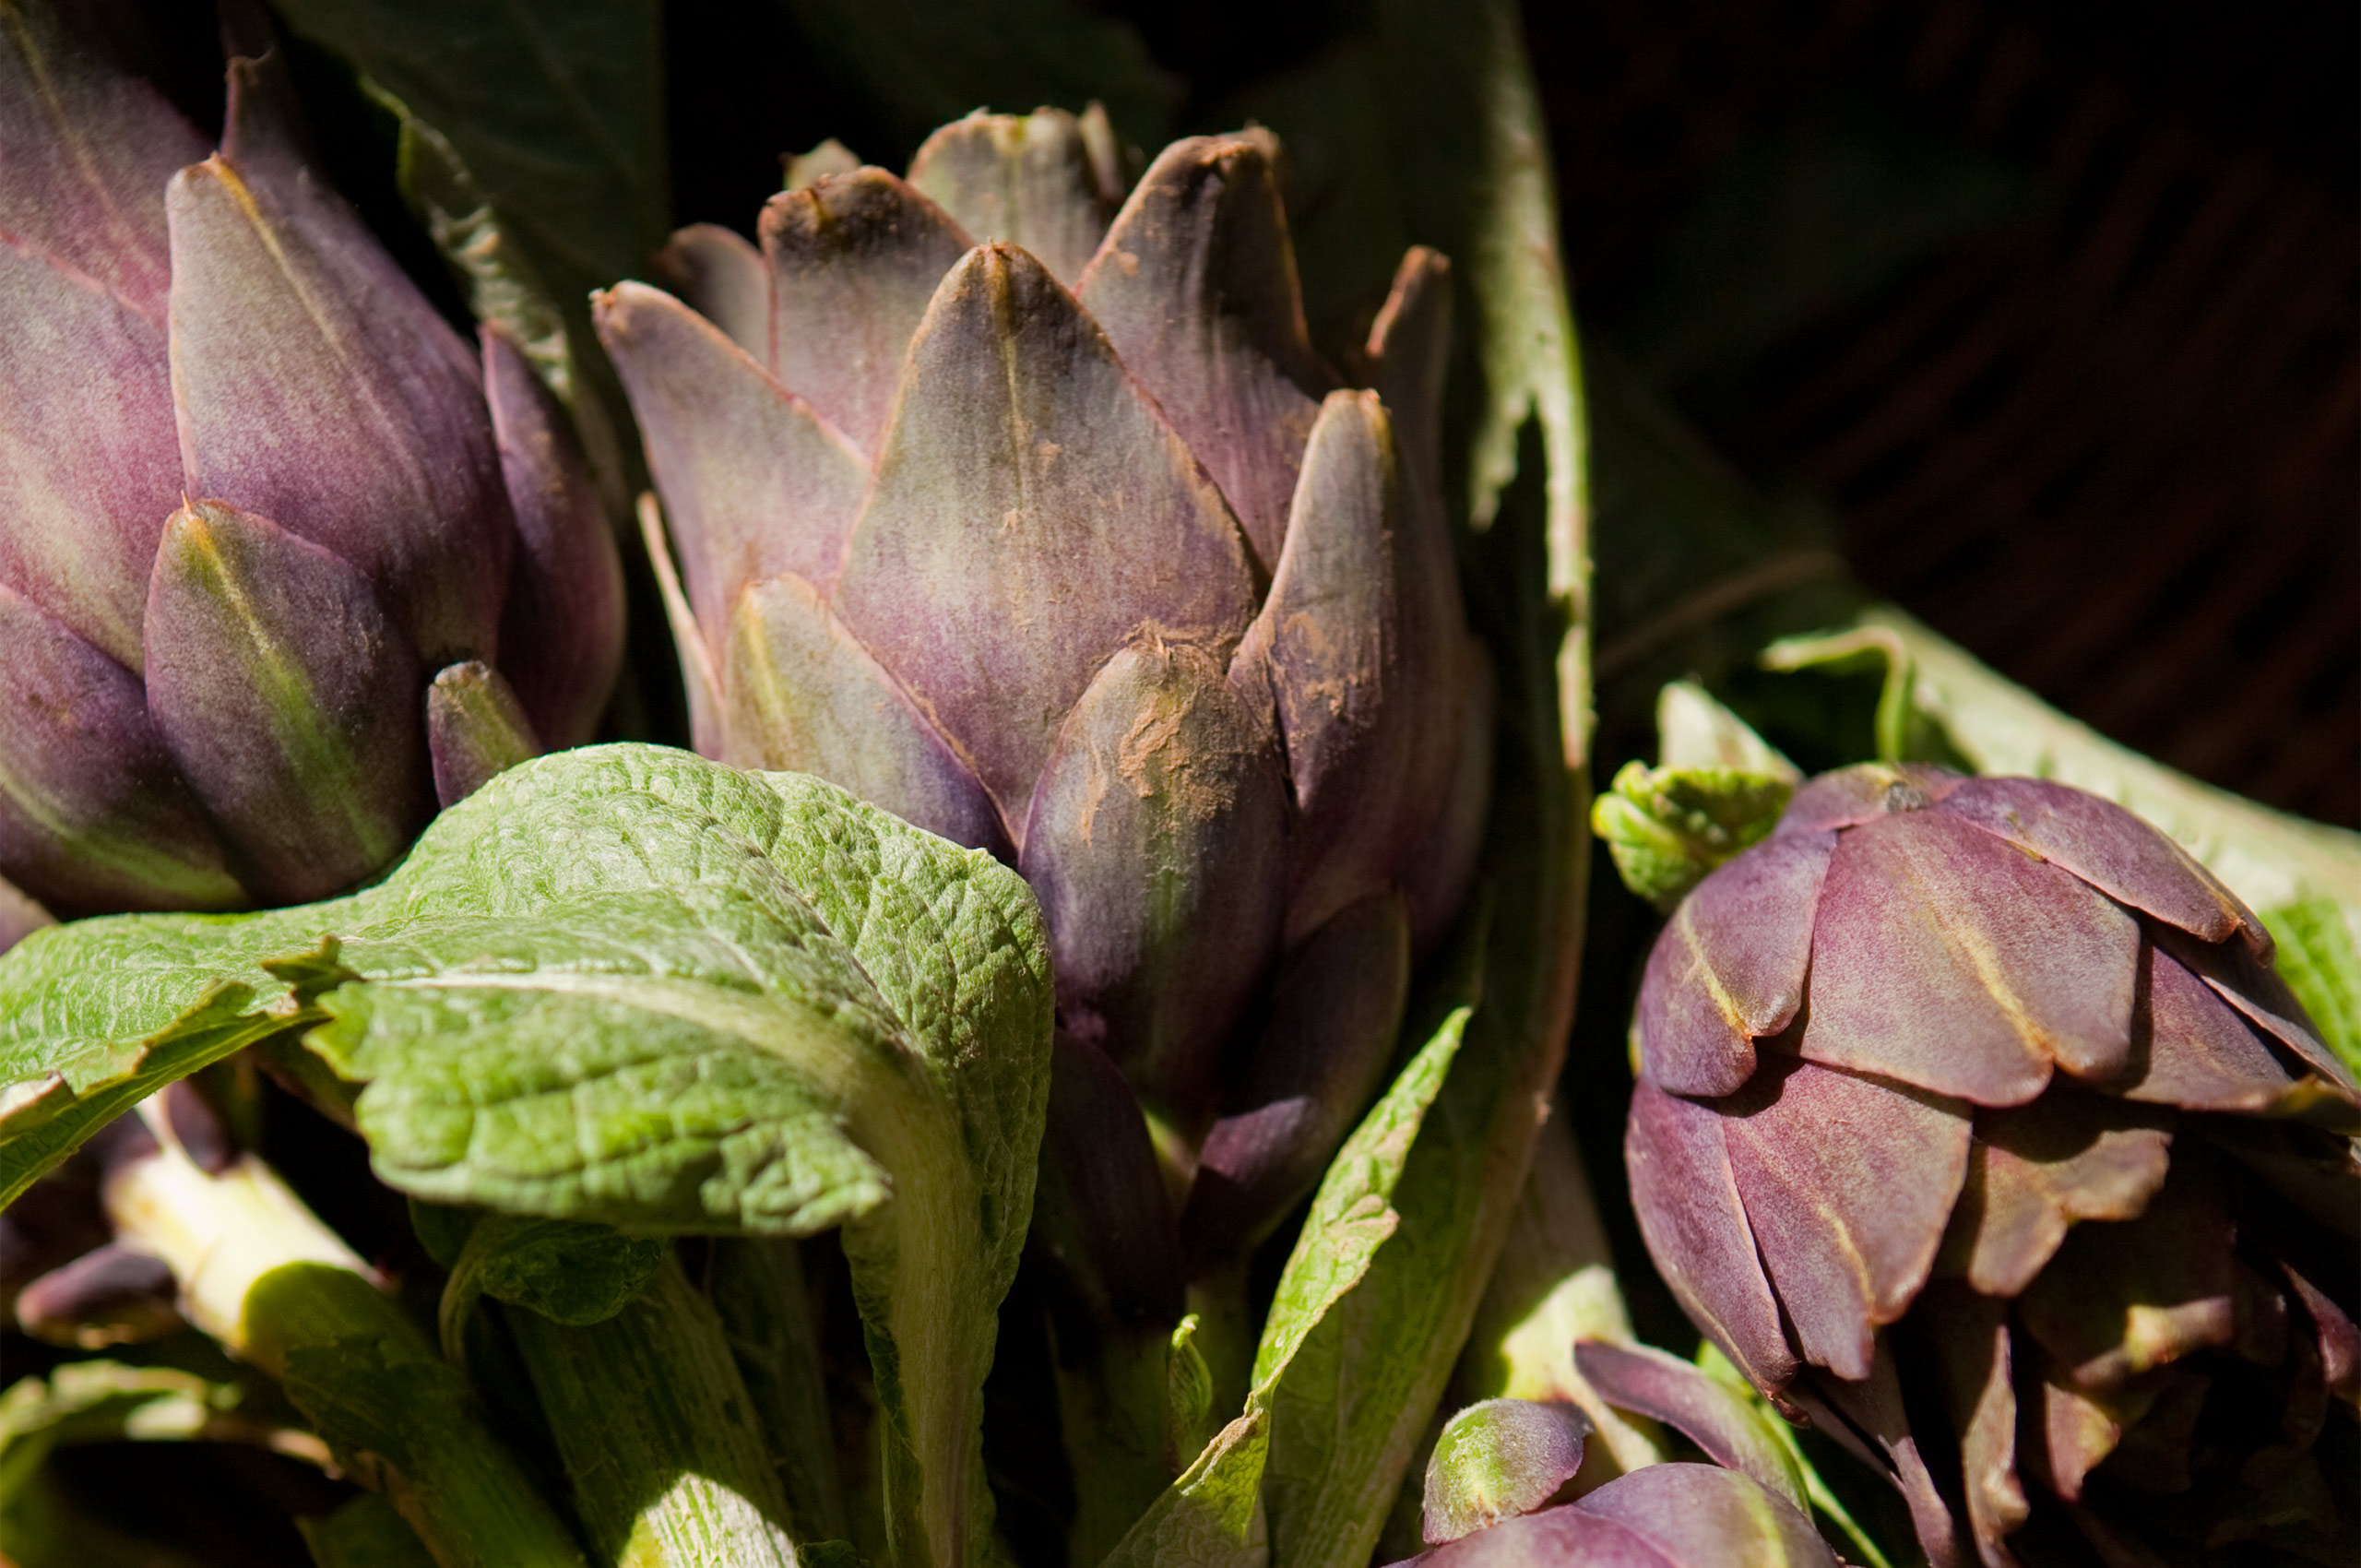 Purple Artichokes Farmers Market Paris, France